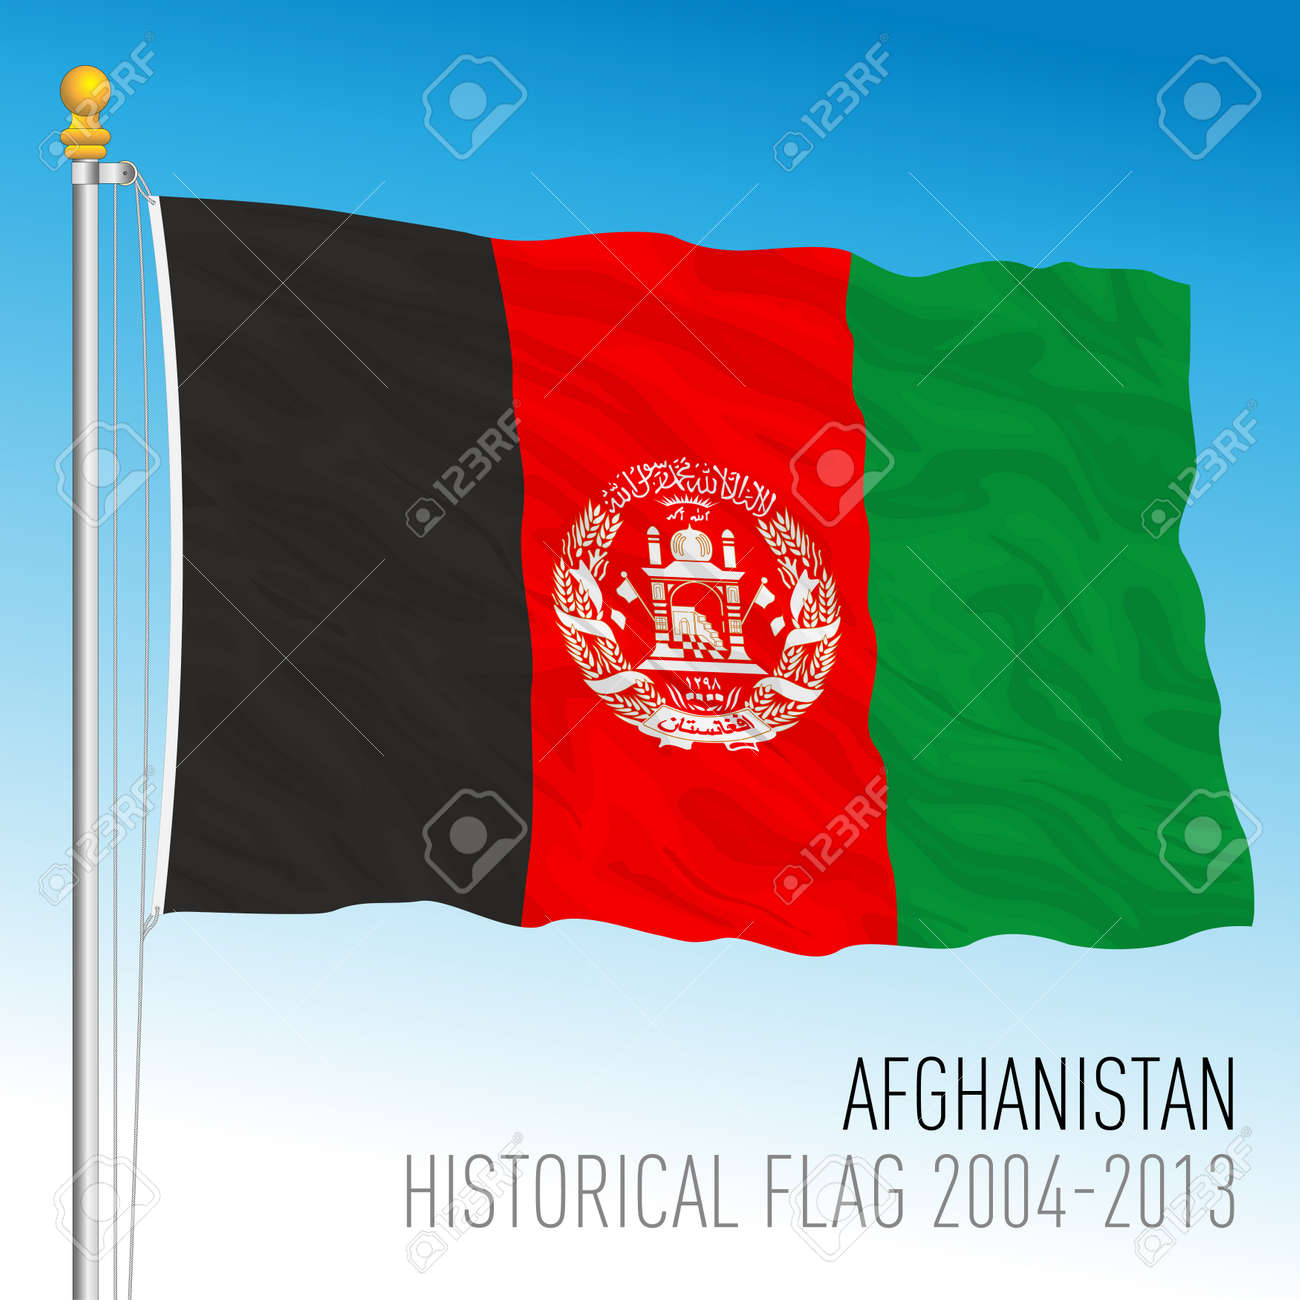 Afghanistan historical flag, years 2004 to 2013, asiatic country, vector illustration - 173270076